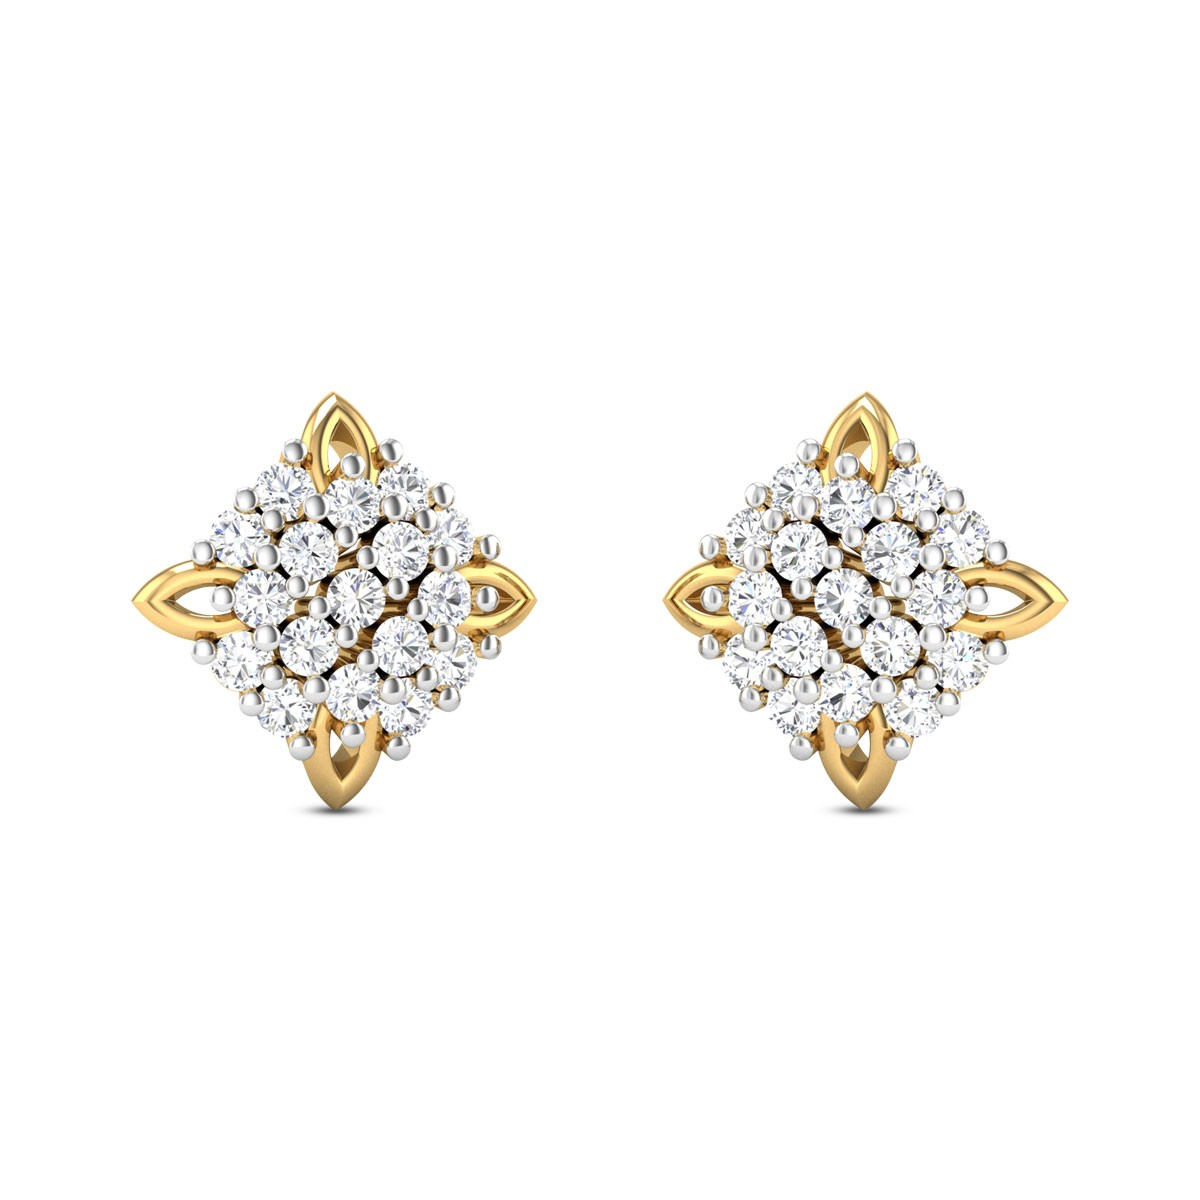 Kristina Diamond Earrings